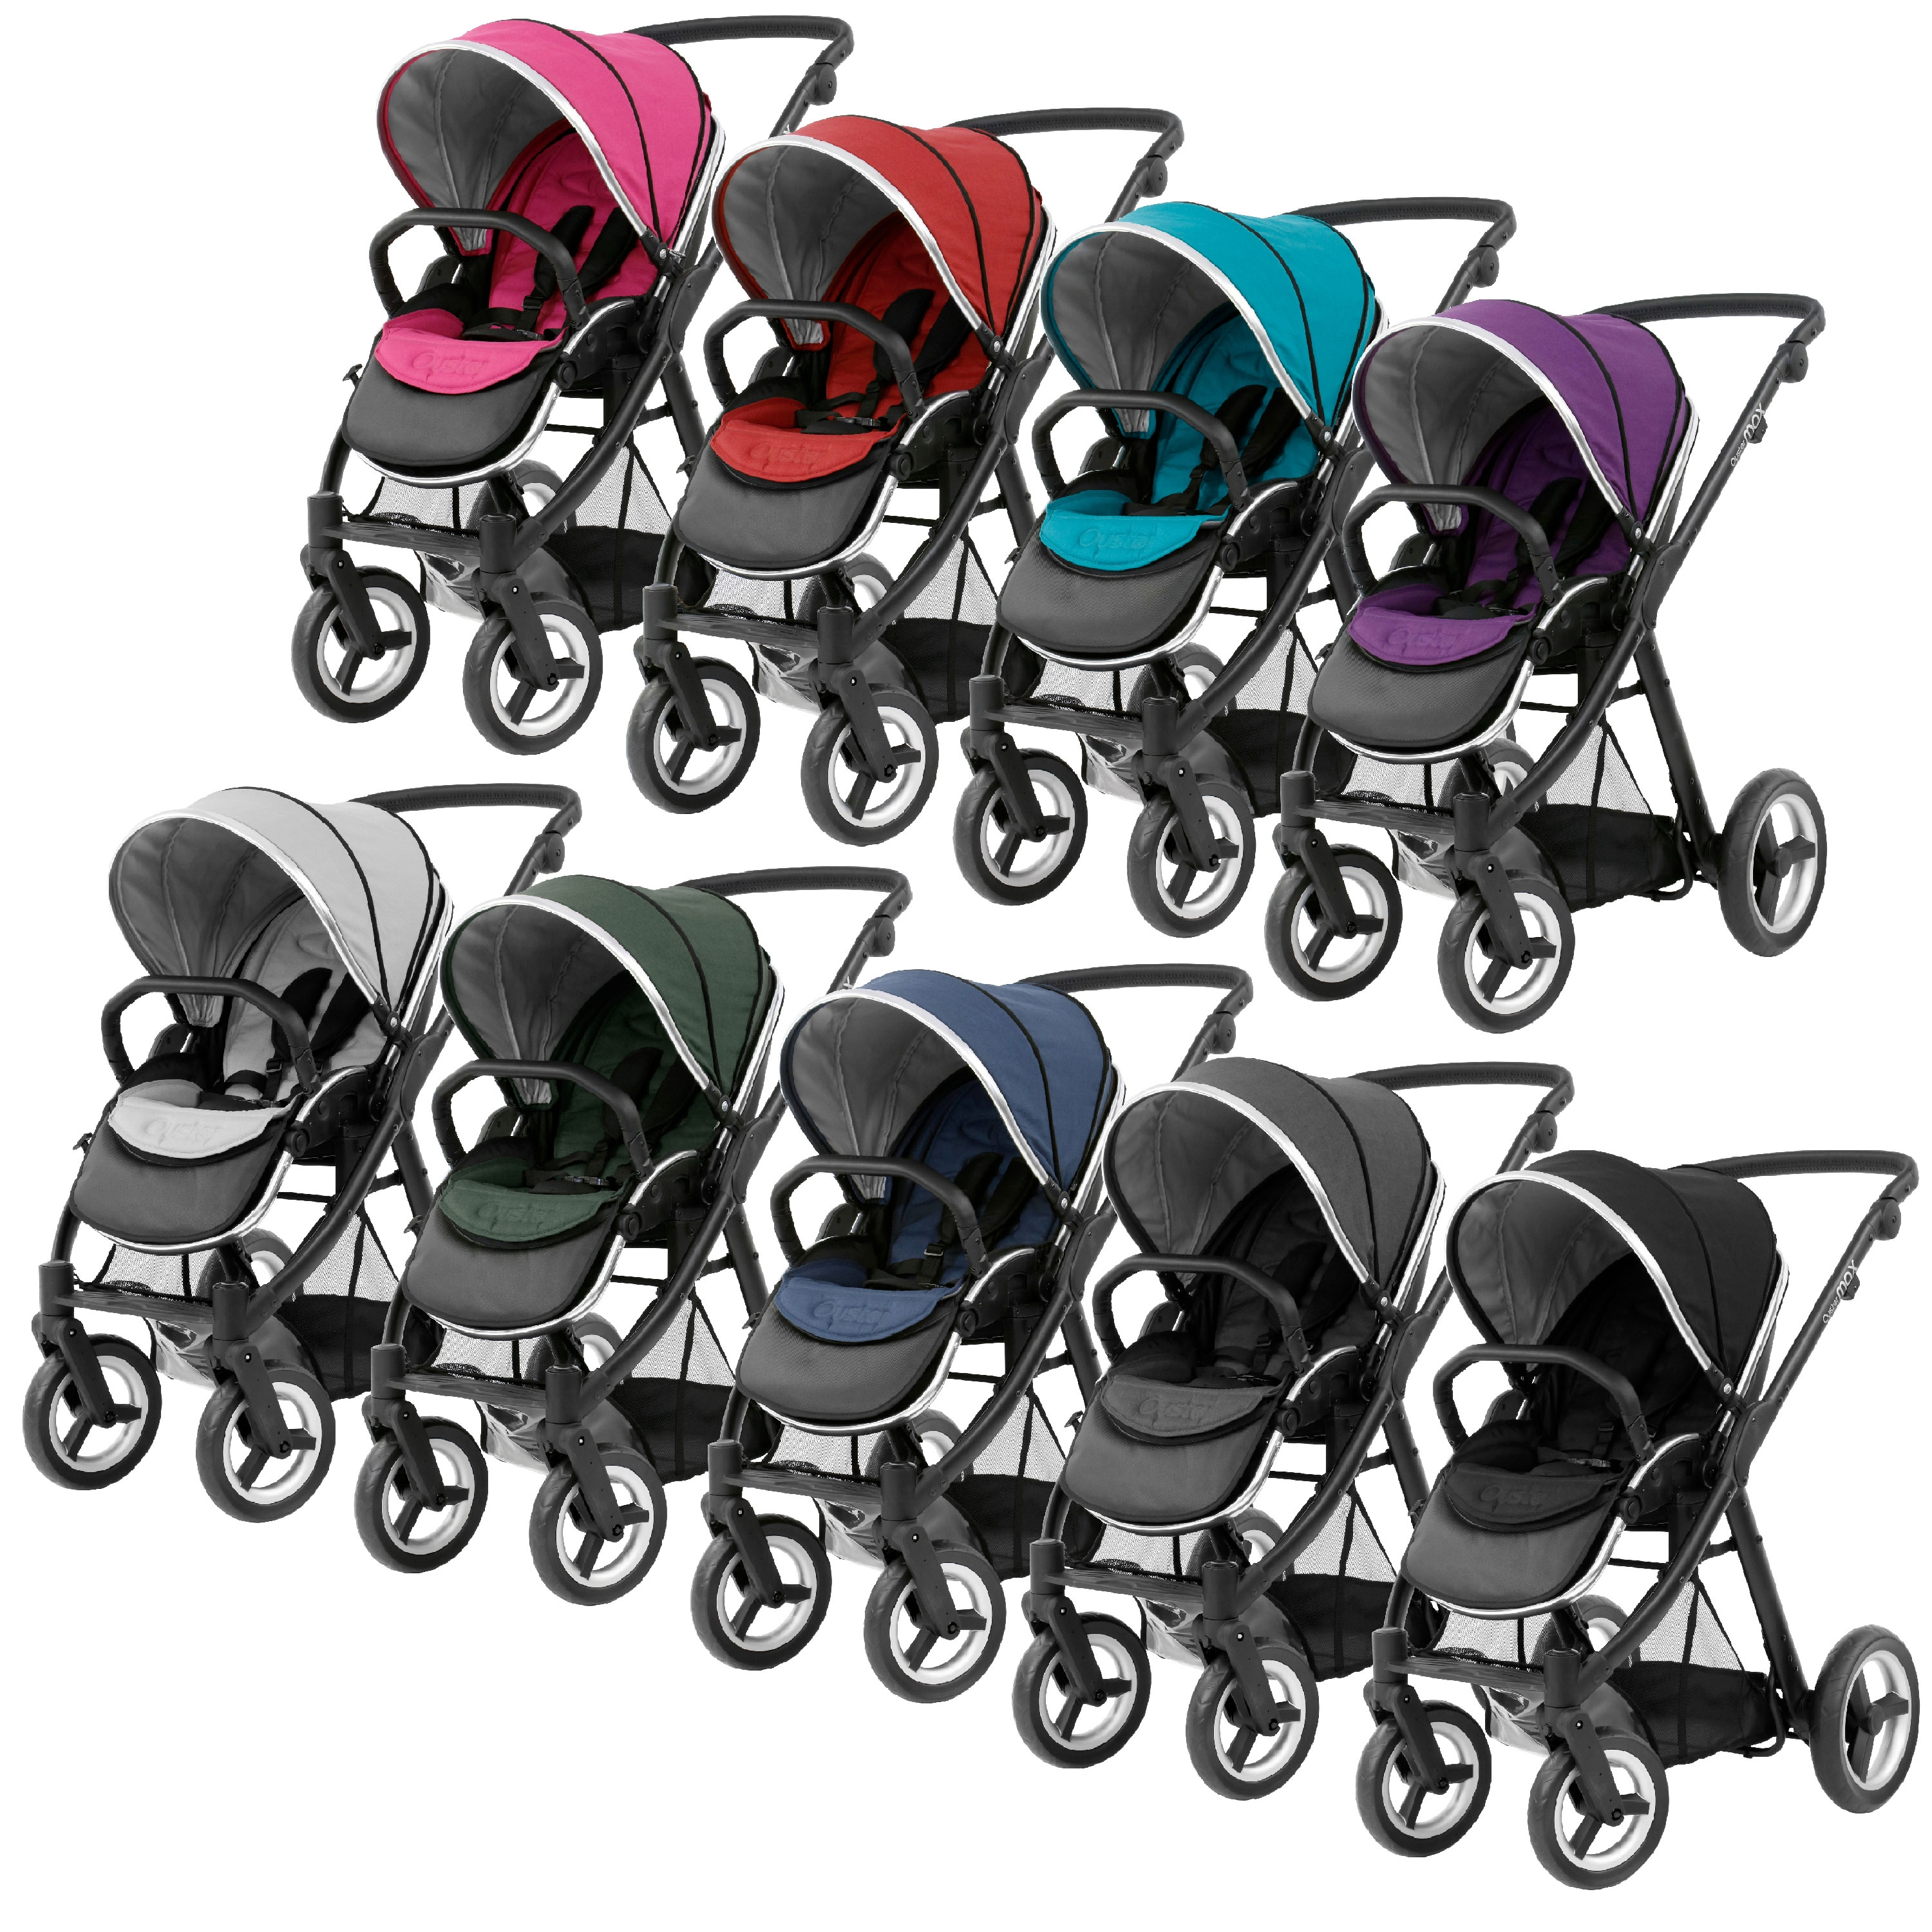 BabyStyle Oyster Max Baby / Child's Pushchair And Colour Pack.